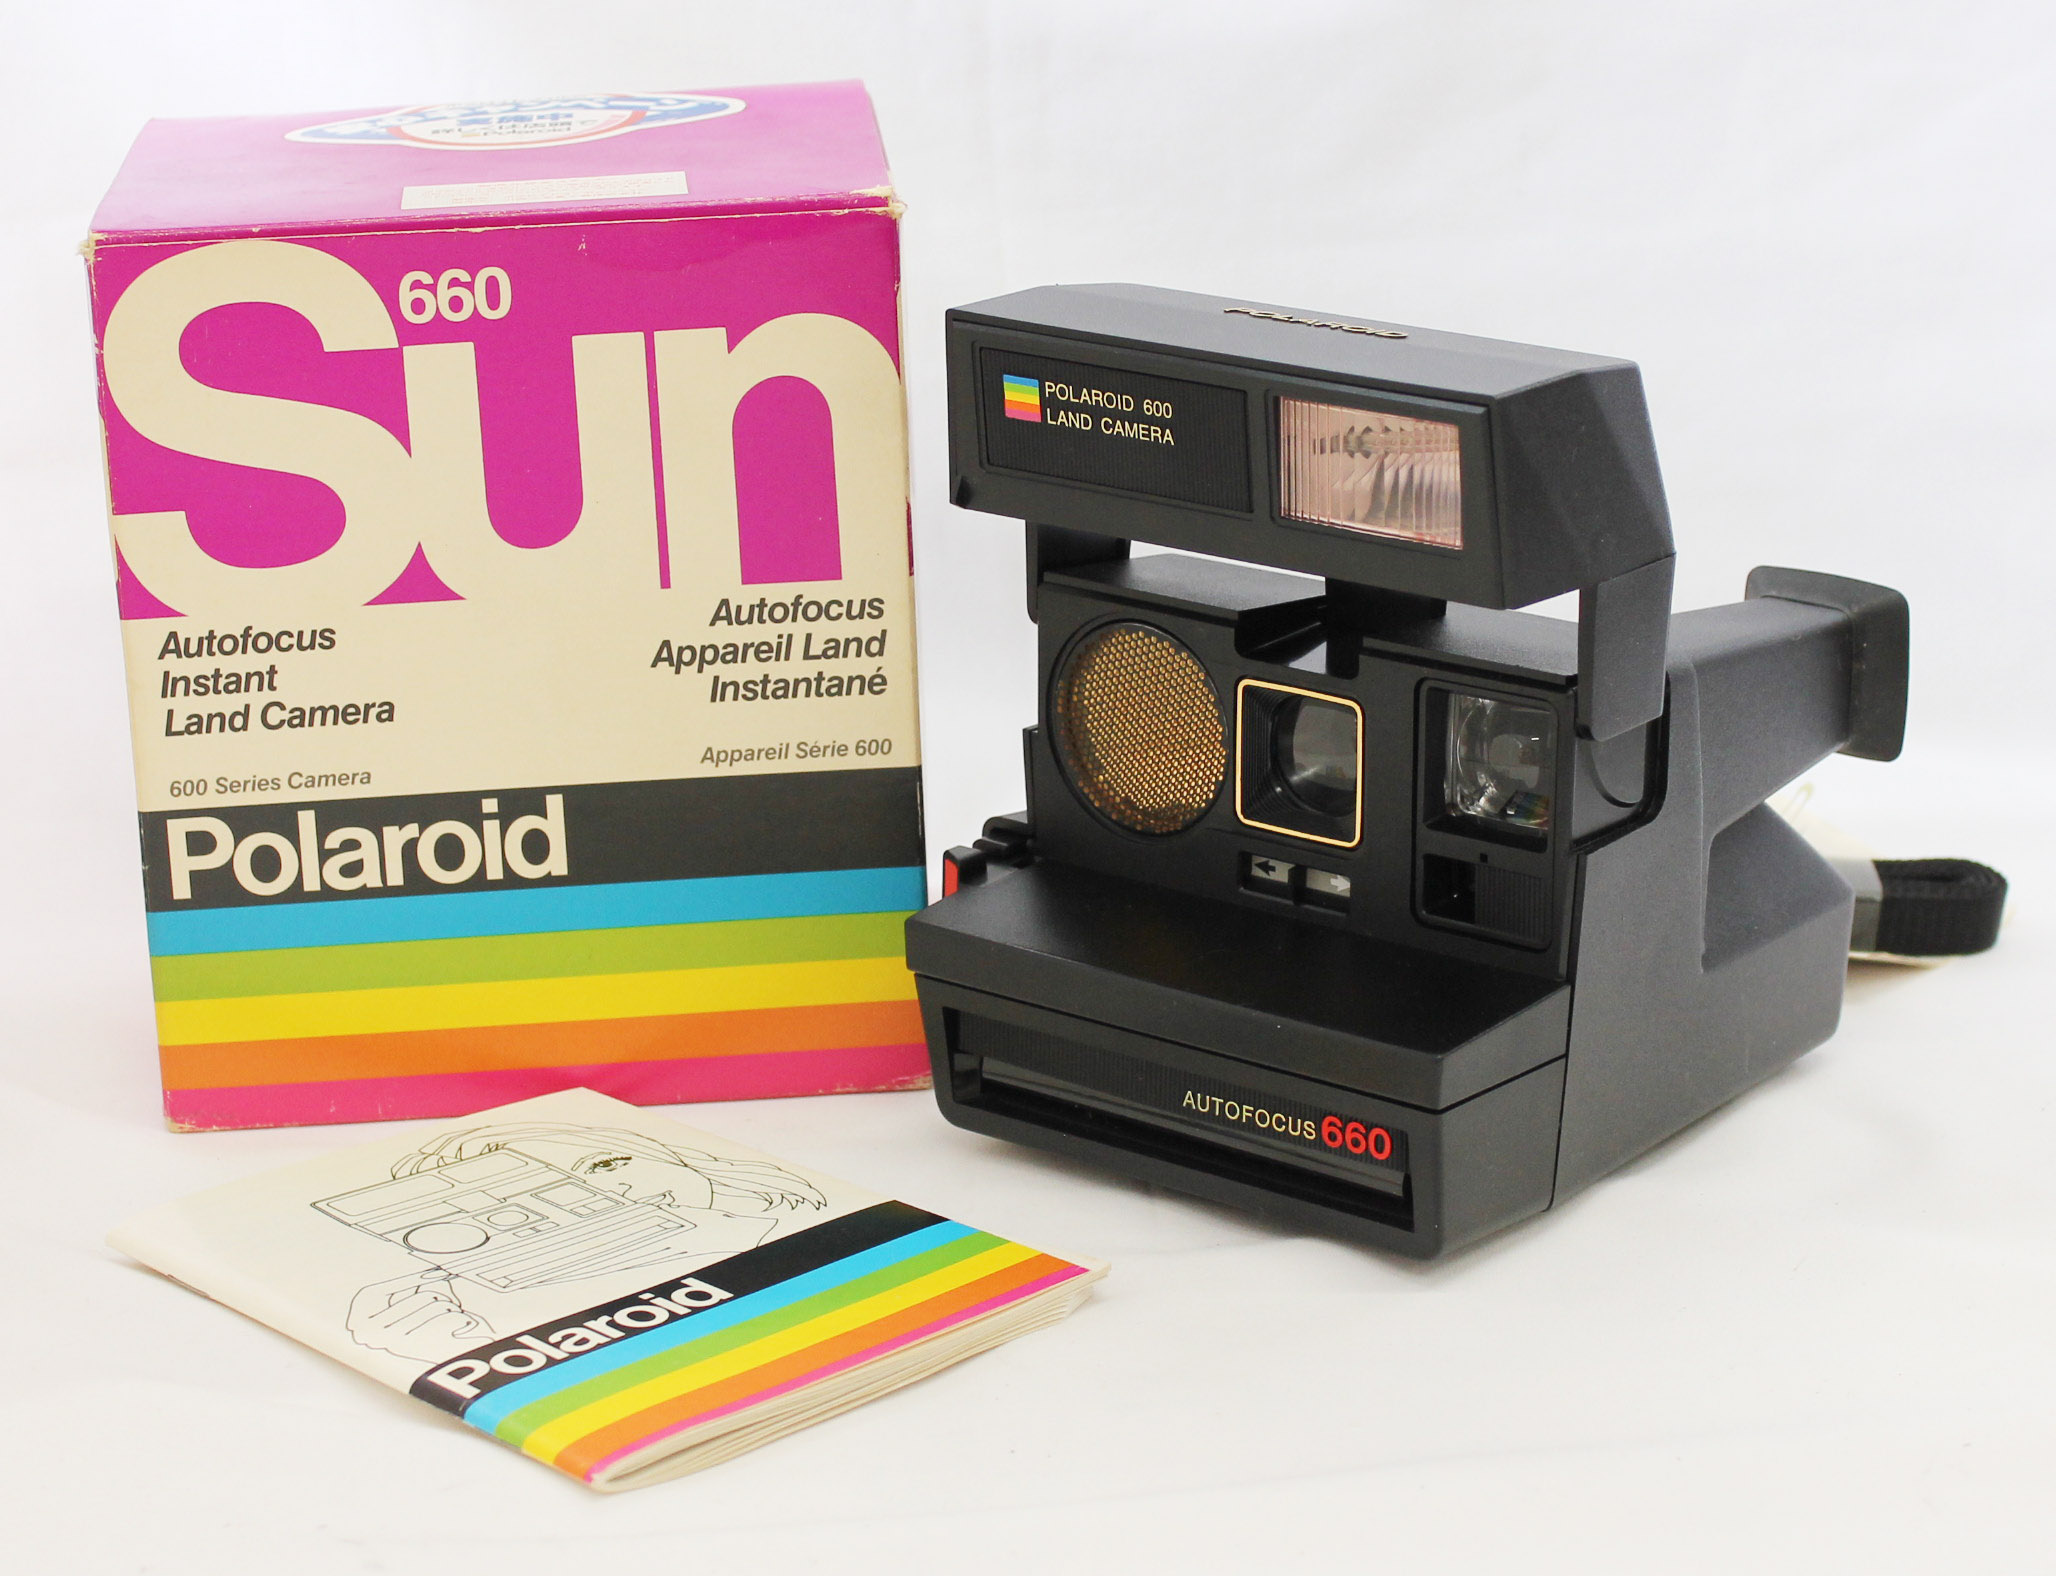 Japan Used Camera Shop | [Near Mint] Polaroid Sun 660 AF Autofocus Instant Land Camera in Box from Japan